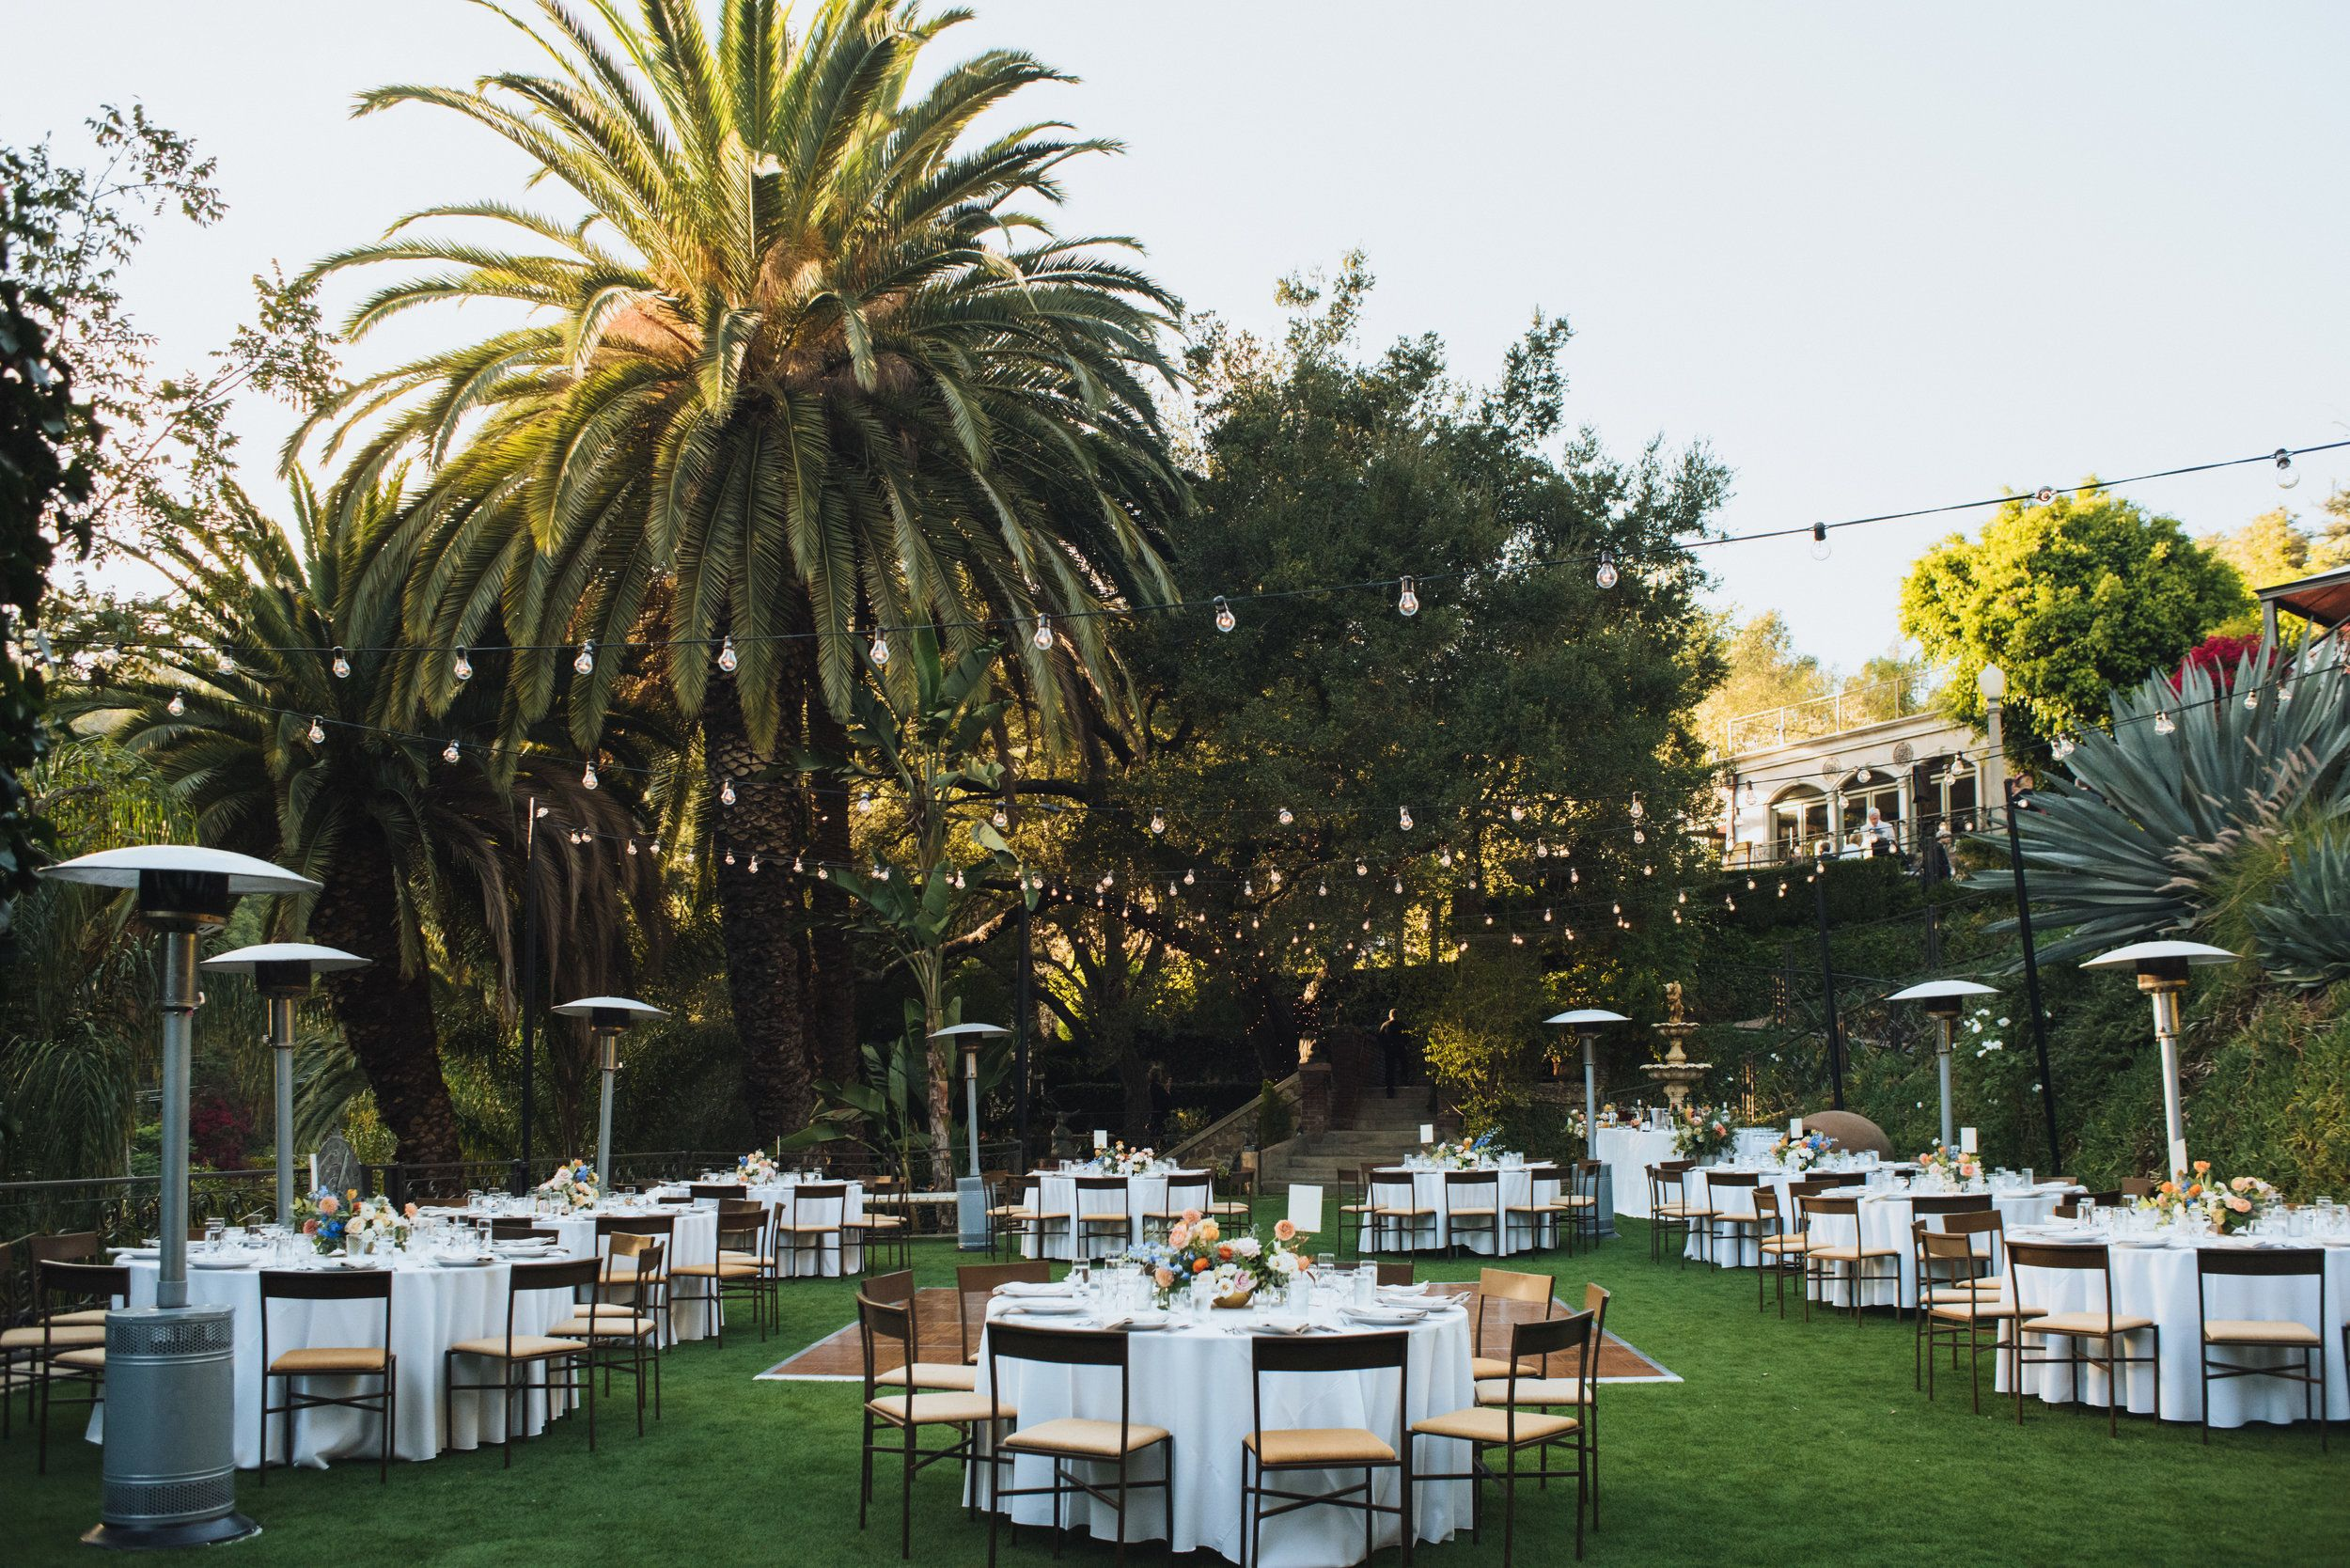 Romantic Outdoor Wedding Reception With Round Tables At The Houdini Estate Houdini Mansion California Wedding Venues Romantic Outdoor Wedding Outdoor Wedding